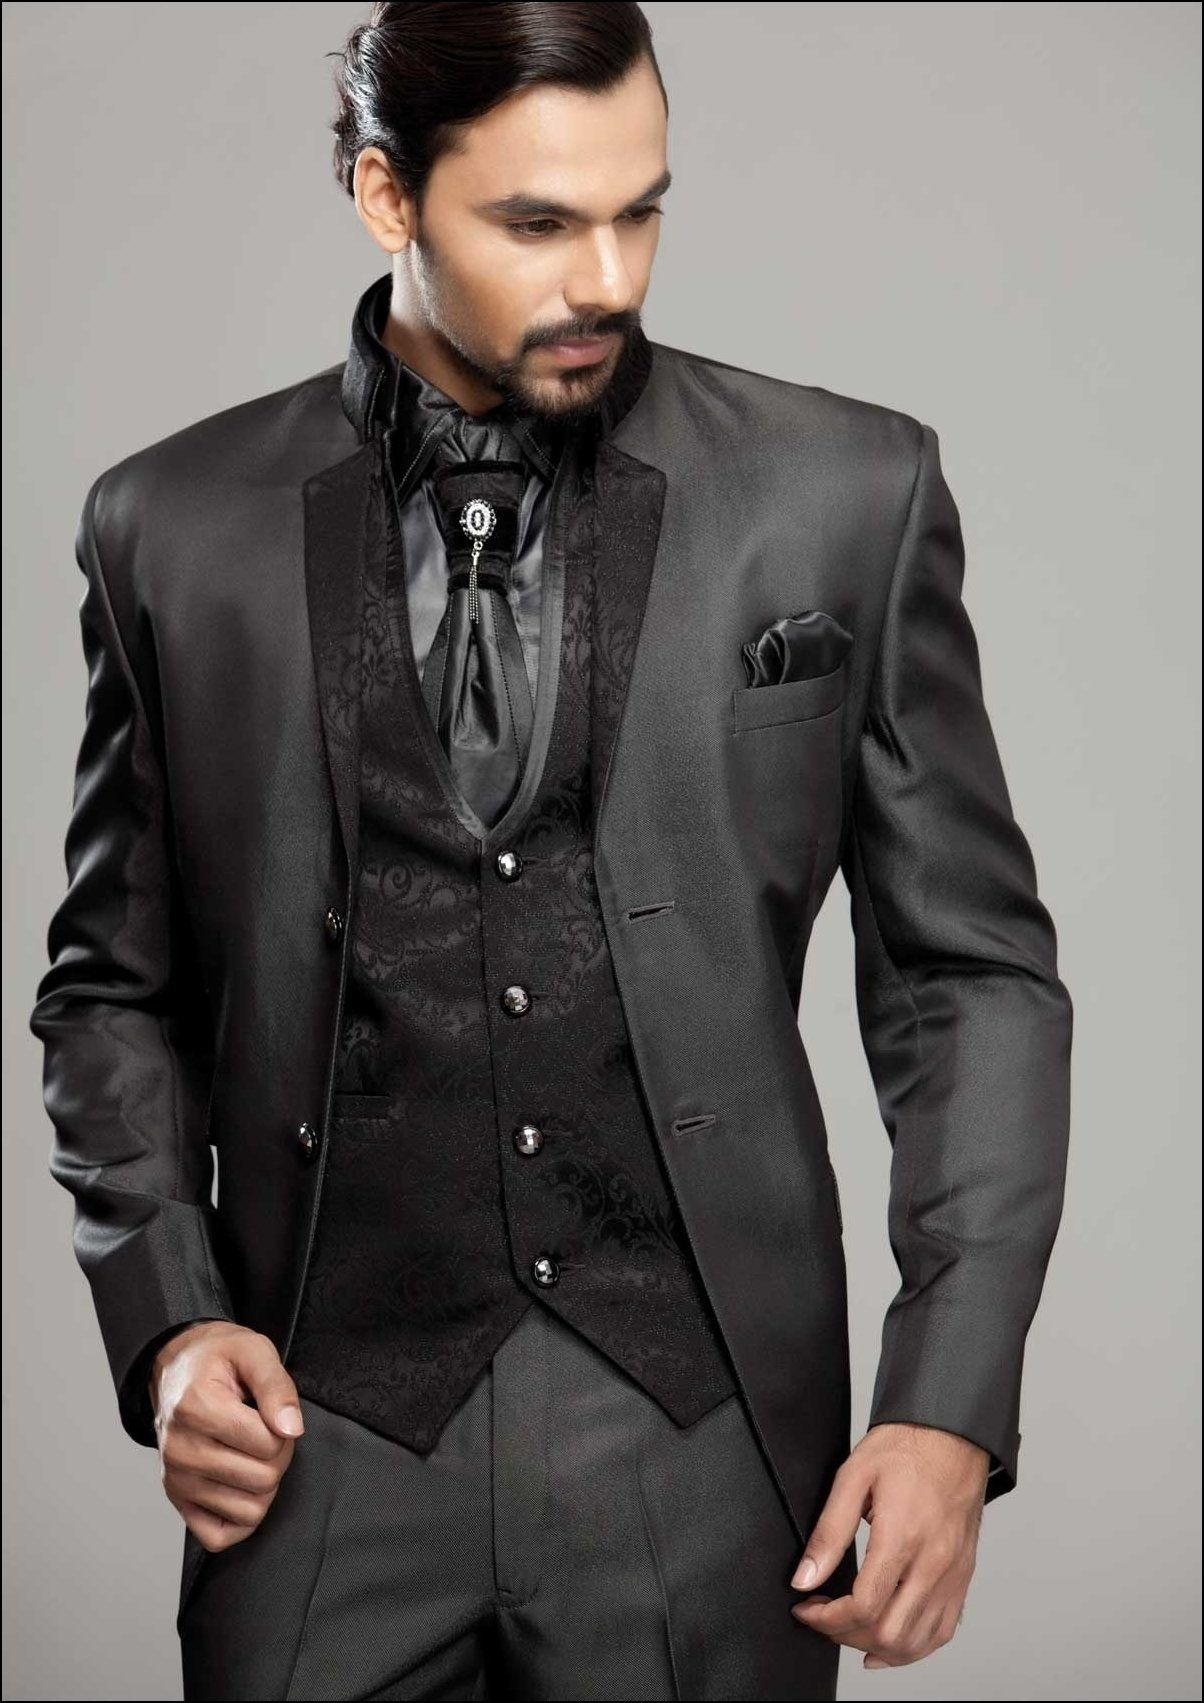 1000  images about my design on Pinterest | Tuxedos, Suits and